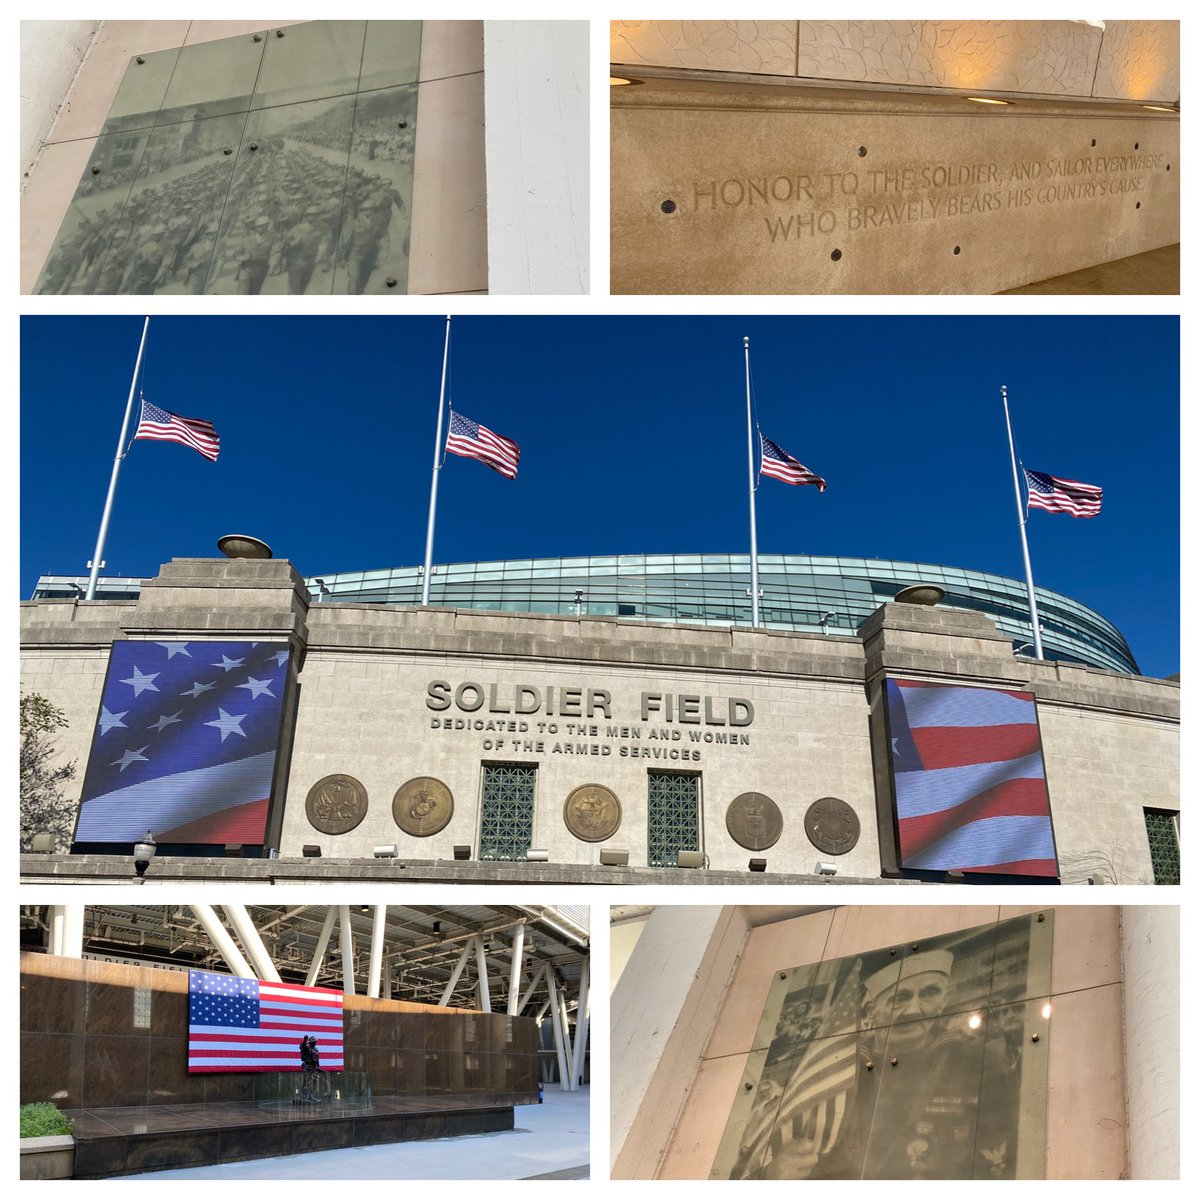 Soldier Field is a remarkable venue. Truly. The honor and spirit of military veterans permeate through the stadium. 🇺🇸🏈